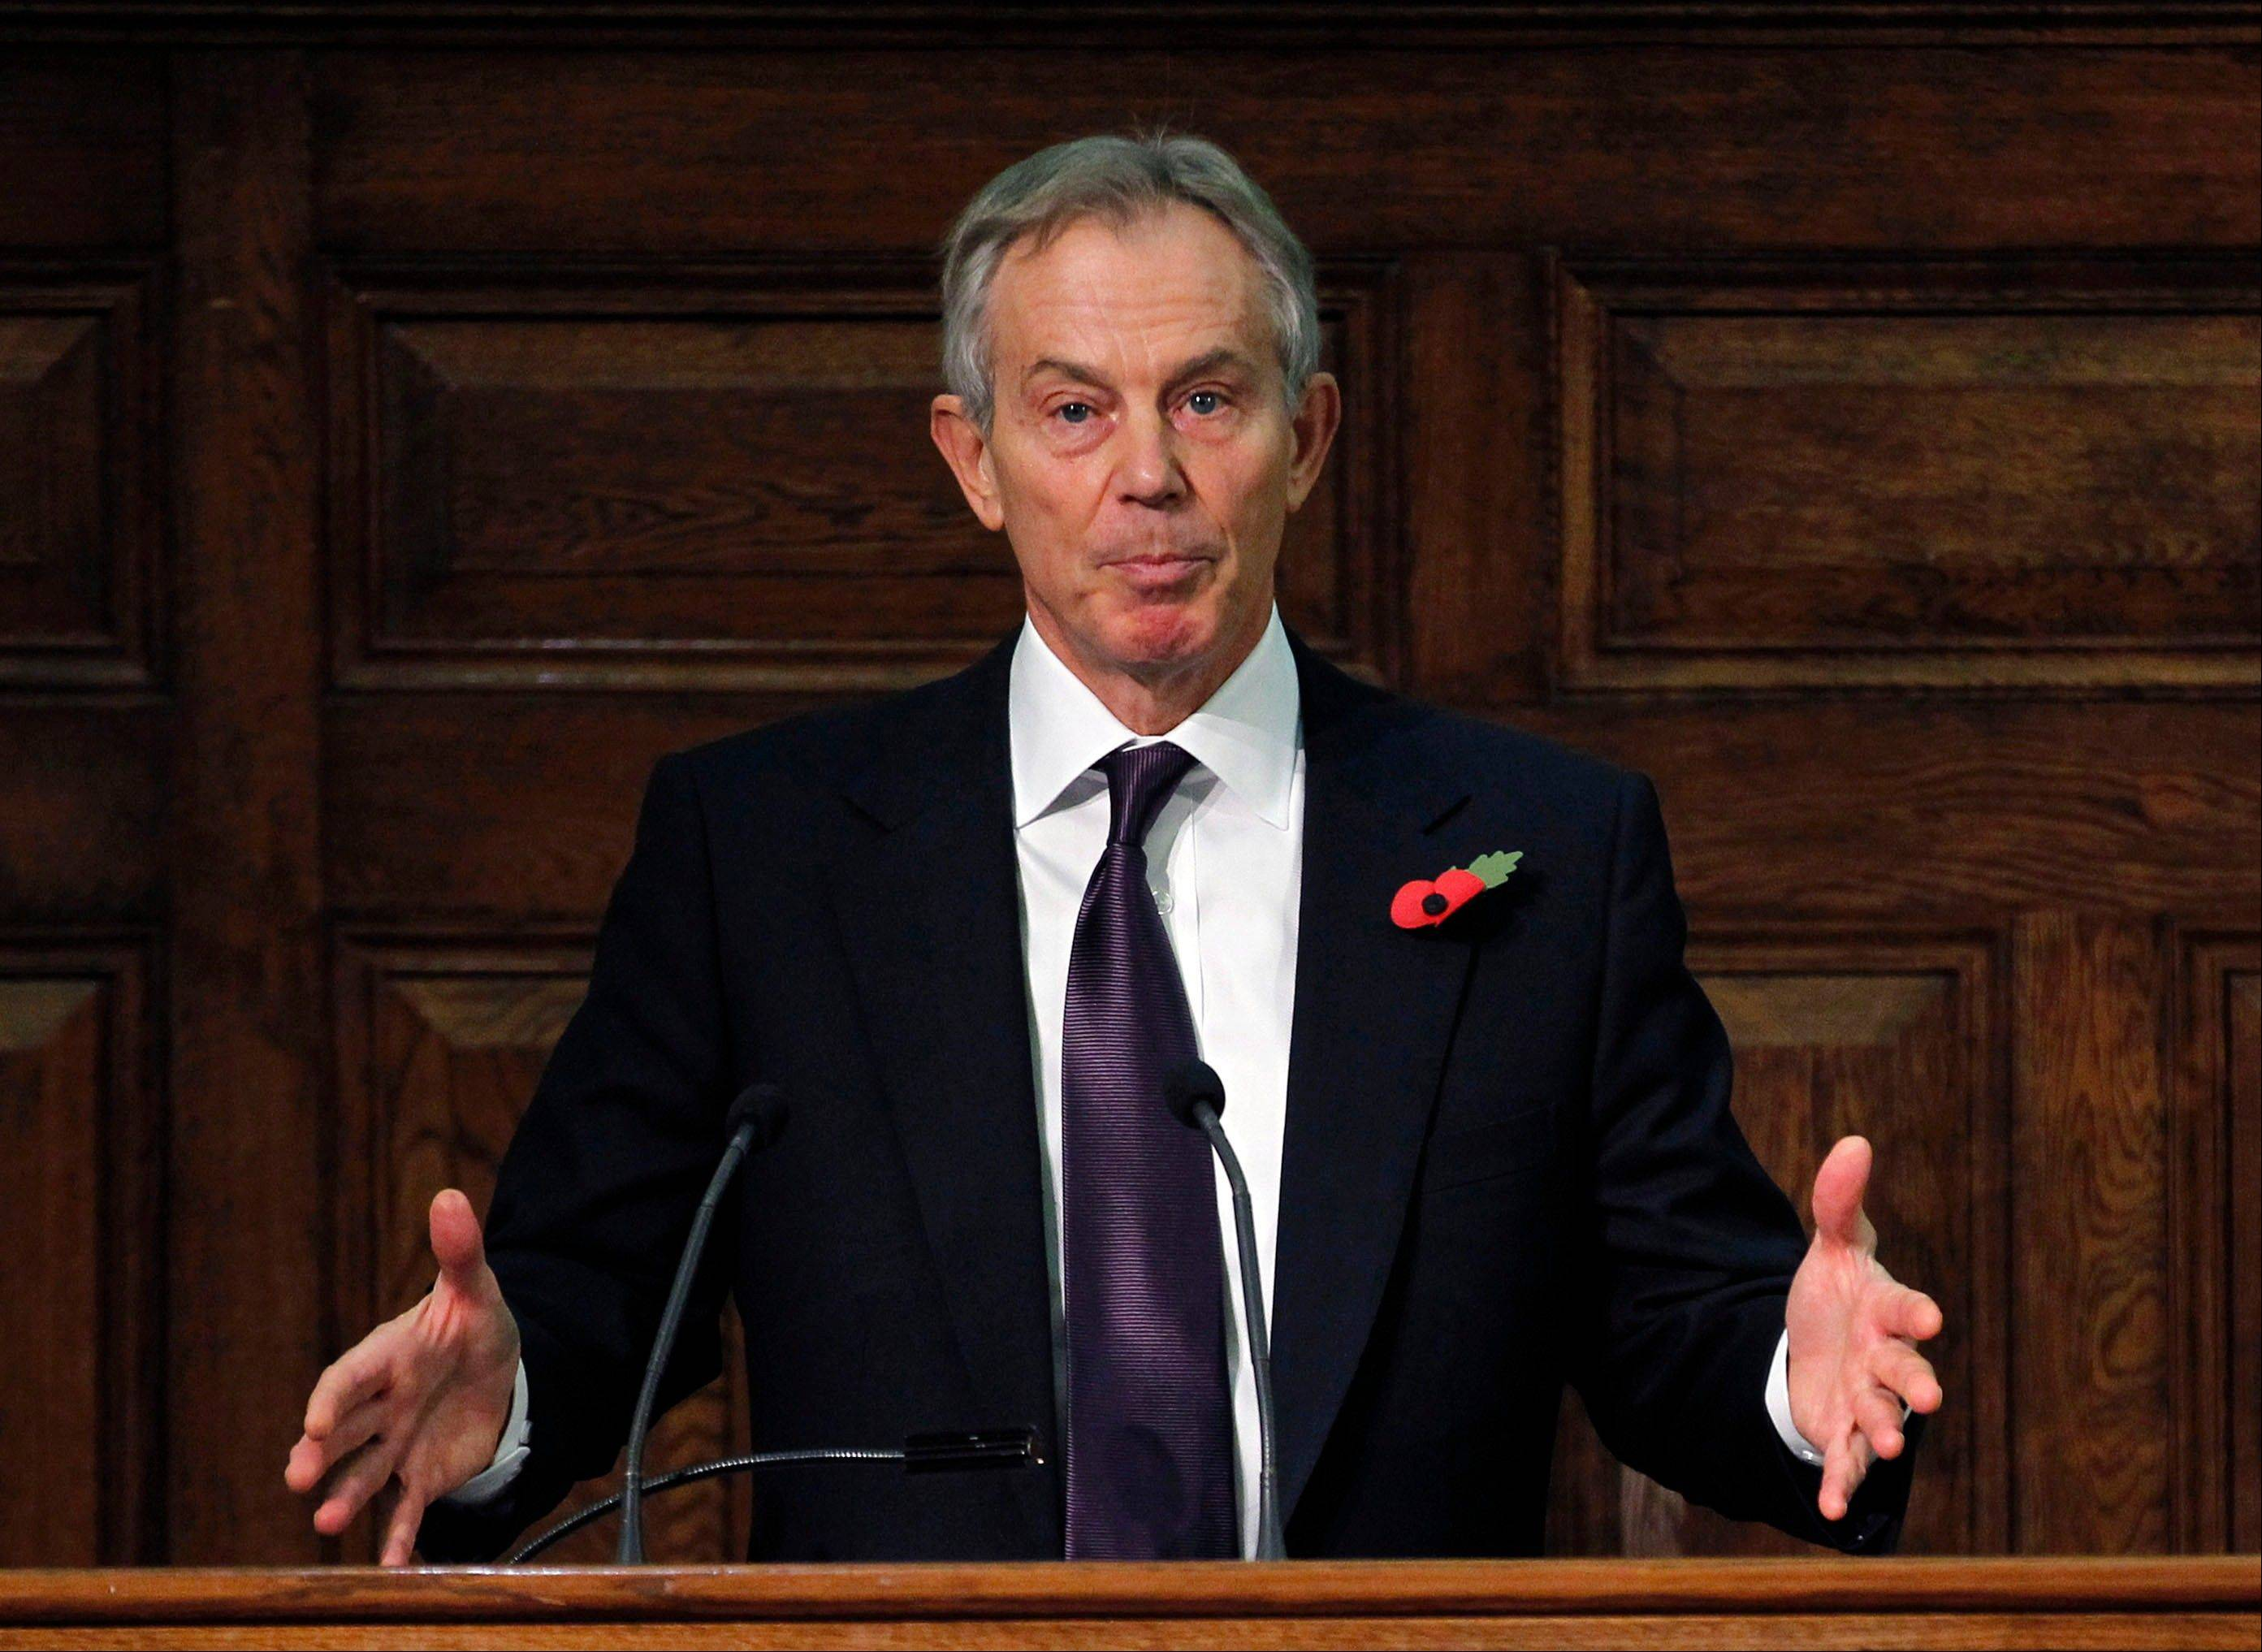 Former British Prime Minister Tony Blair addresses the delegates at the Iraq Britain Business Council's fourth annual conference in central London Monday. Blair says British forces should be proud of their role in the U.S.-led invasion of Iraq, citing what he claimed is major progress made in the country since the toppling of Saddam Hussein in 2003.